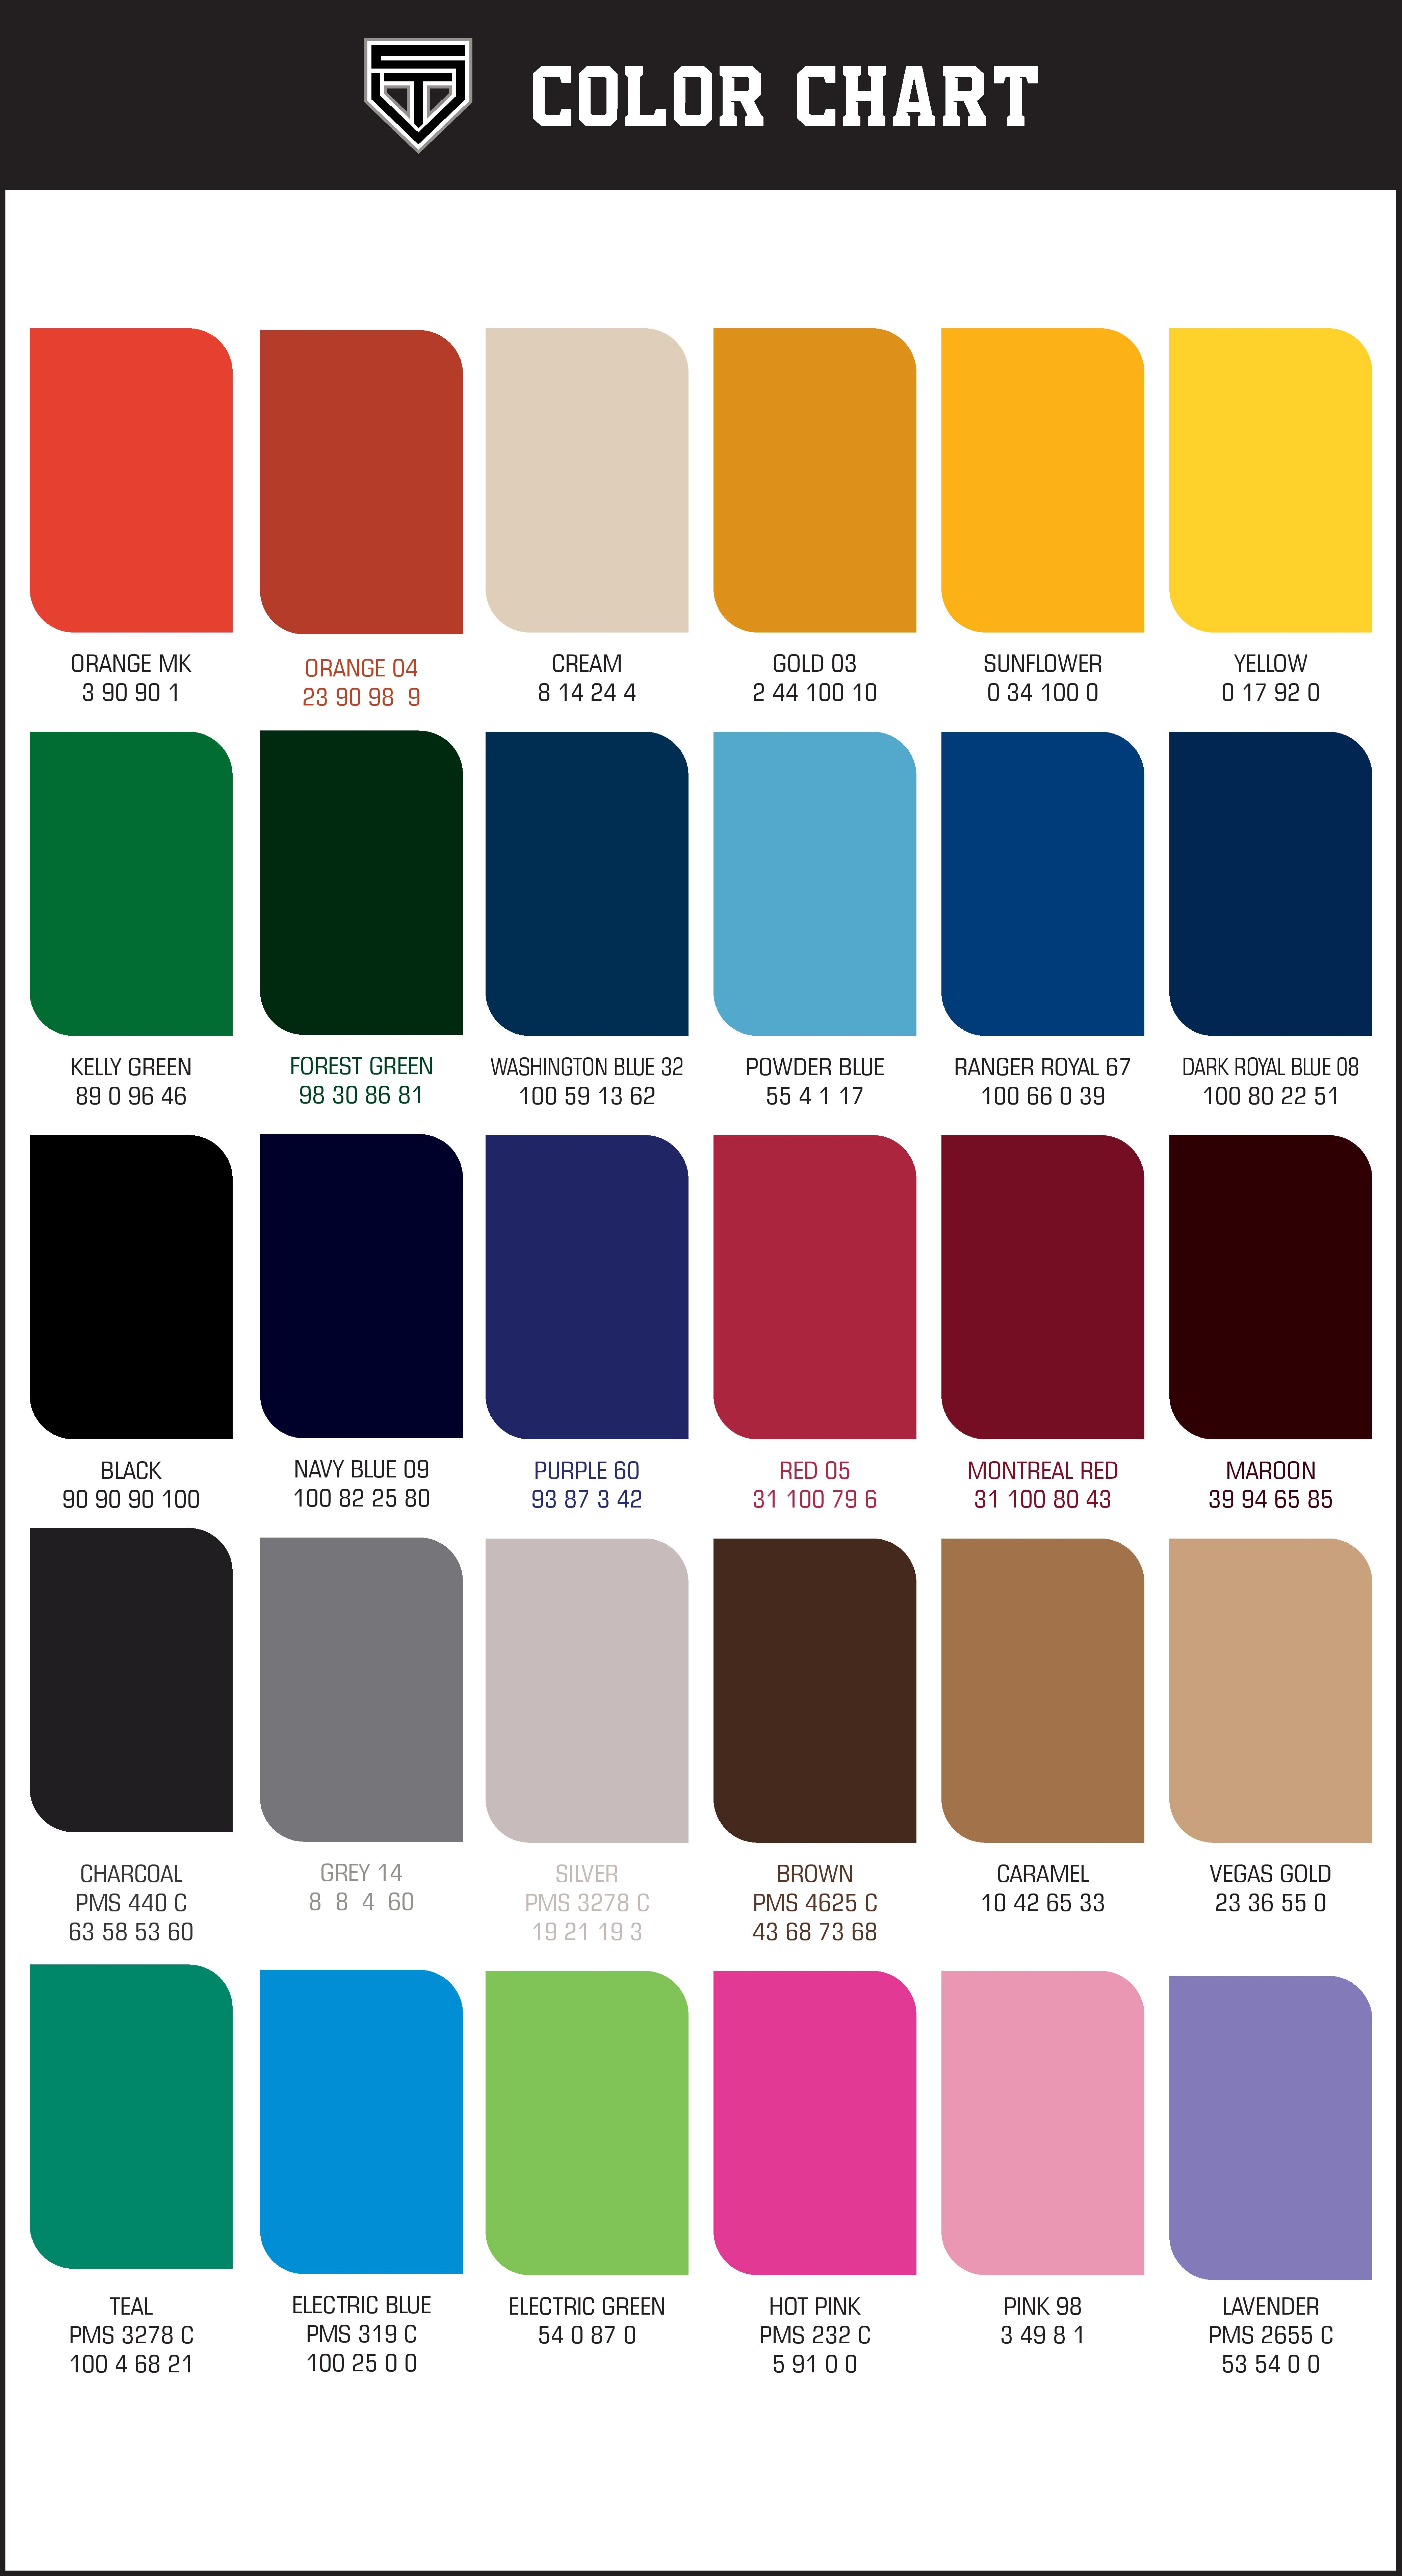 FIVE TOOL COLOR CHART-EPSON-ERGO FINAL-page-001